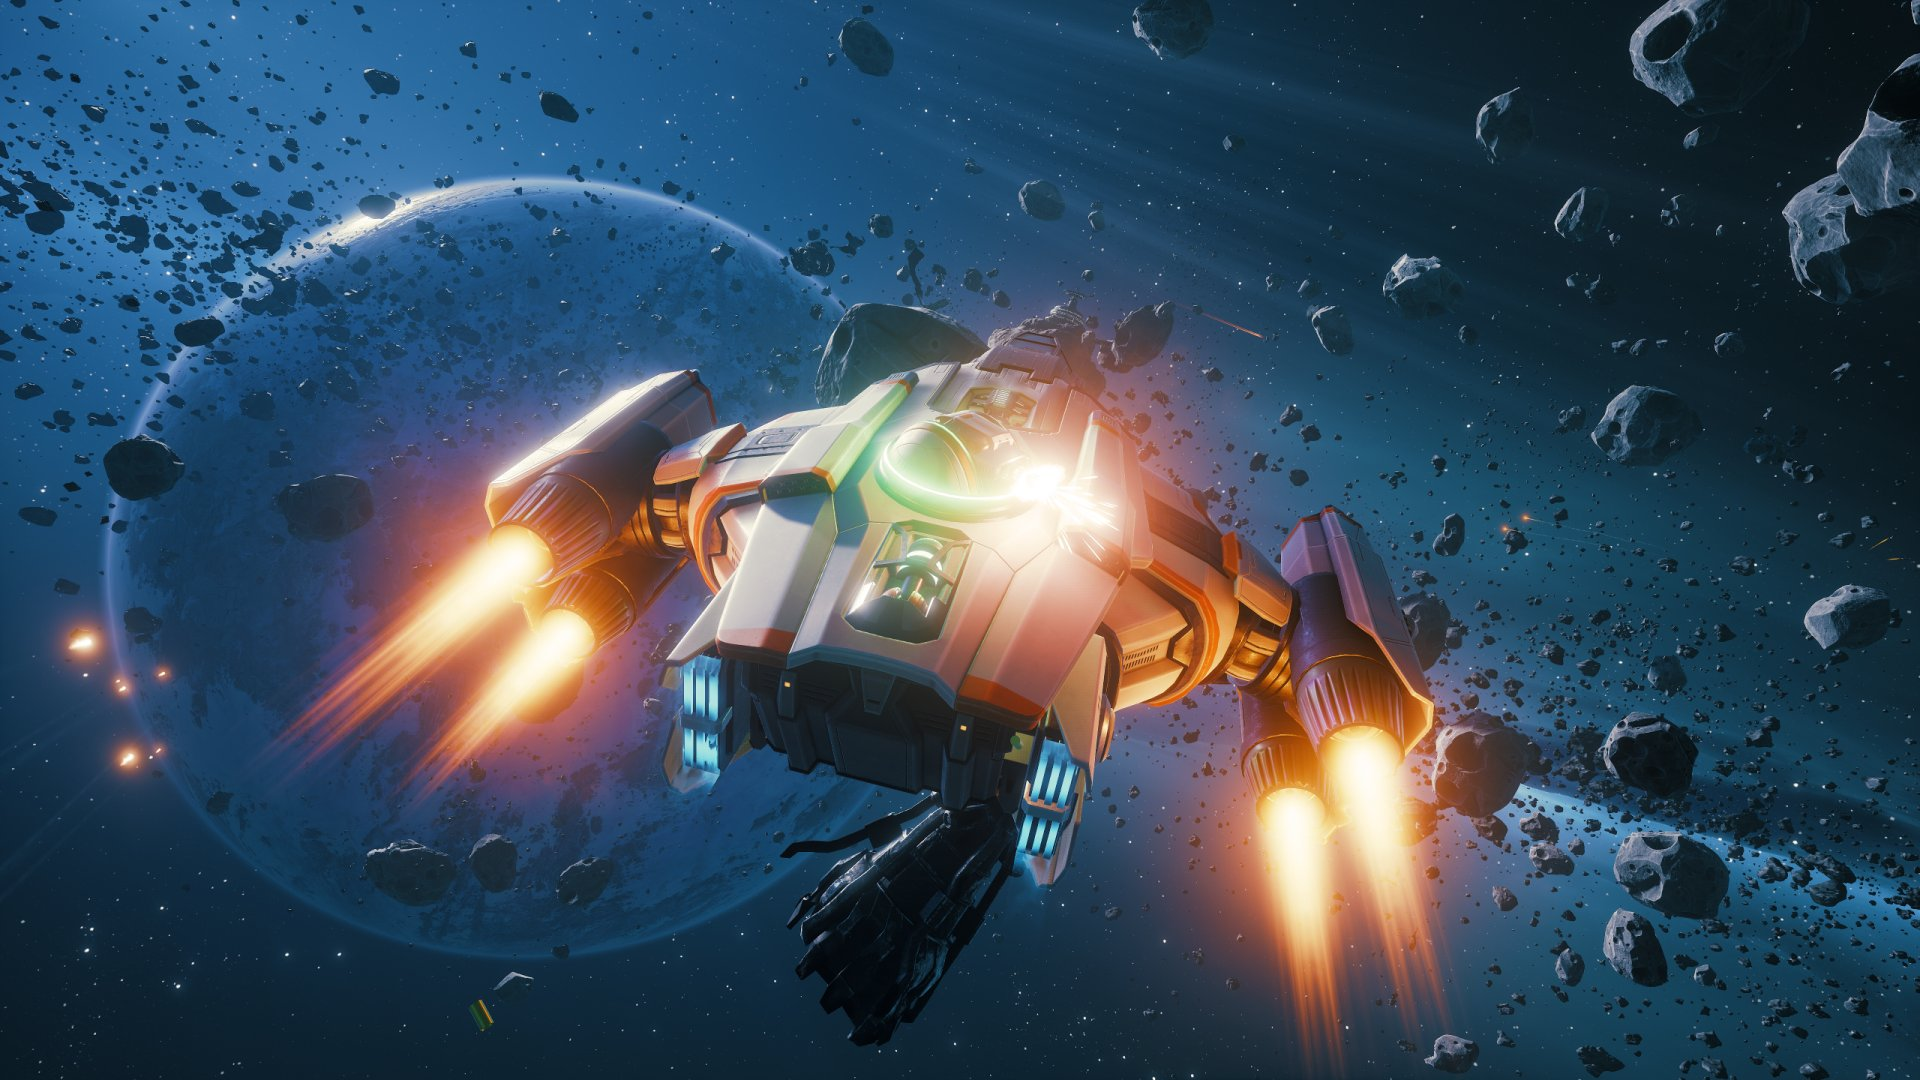 Video Game Everspace 1920x1080